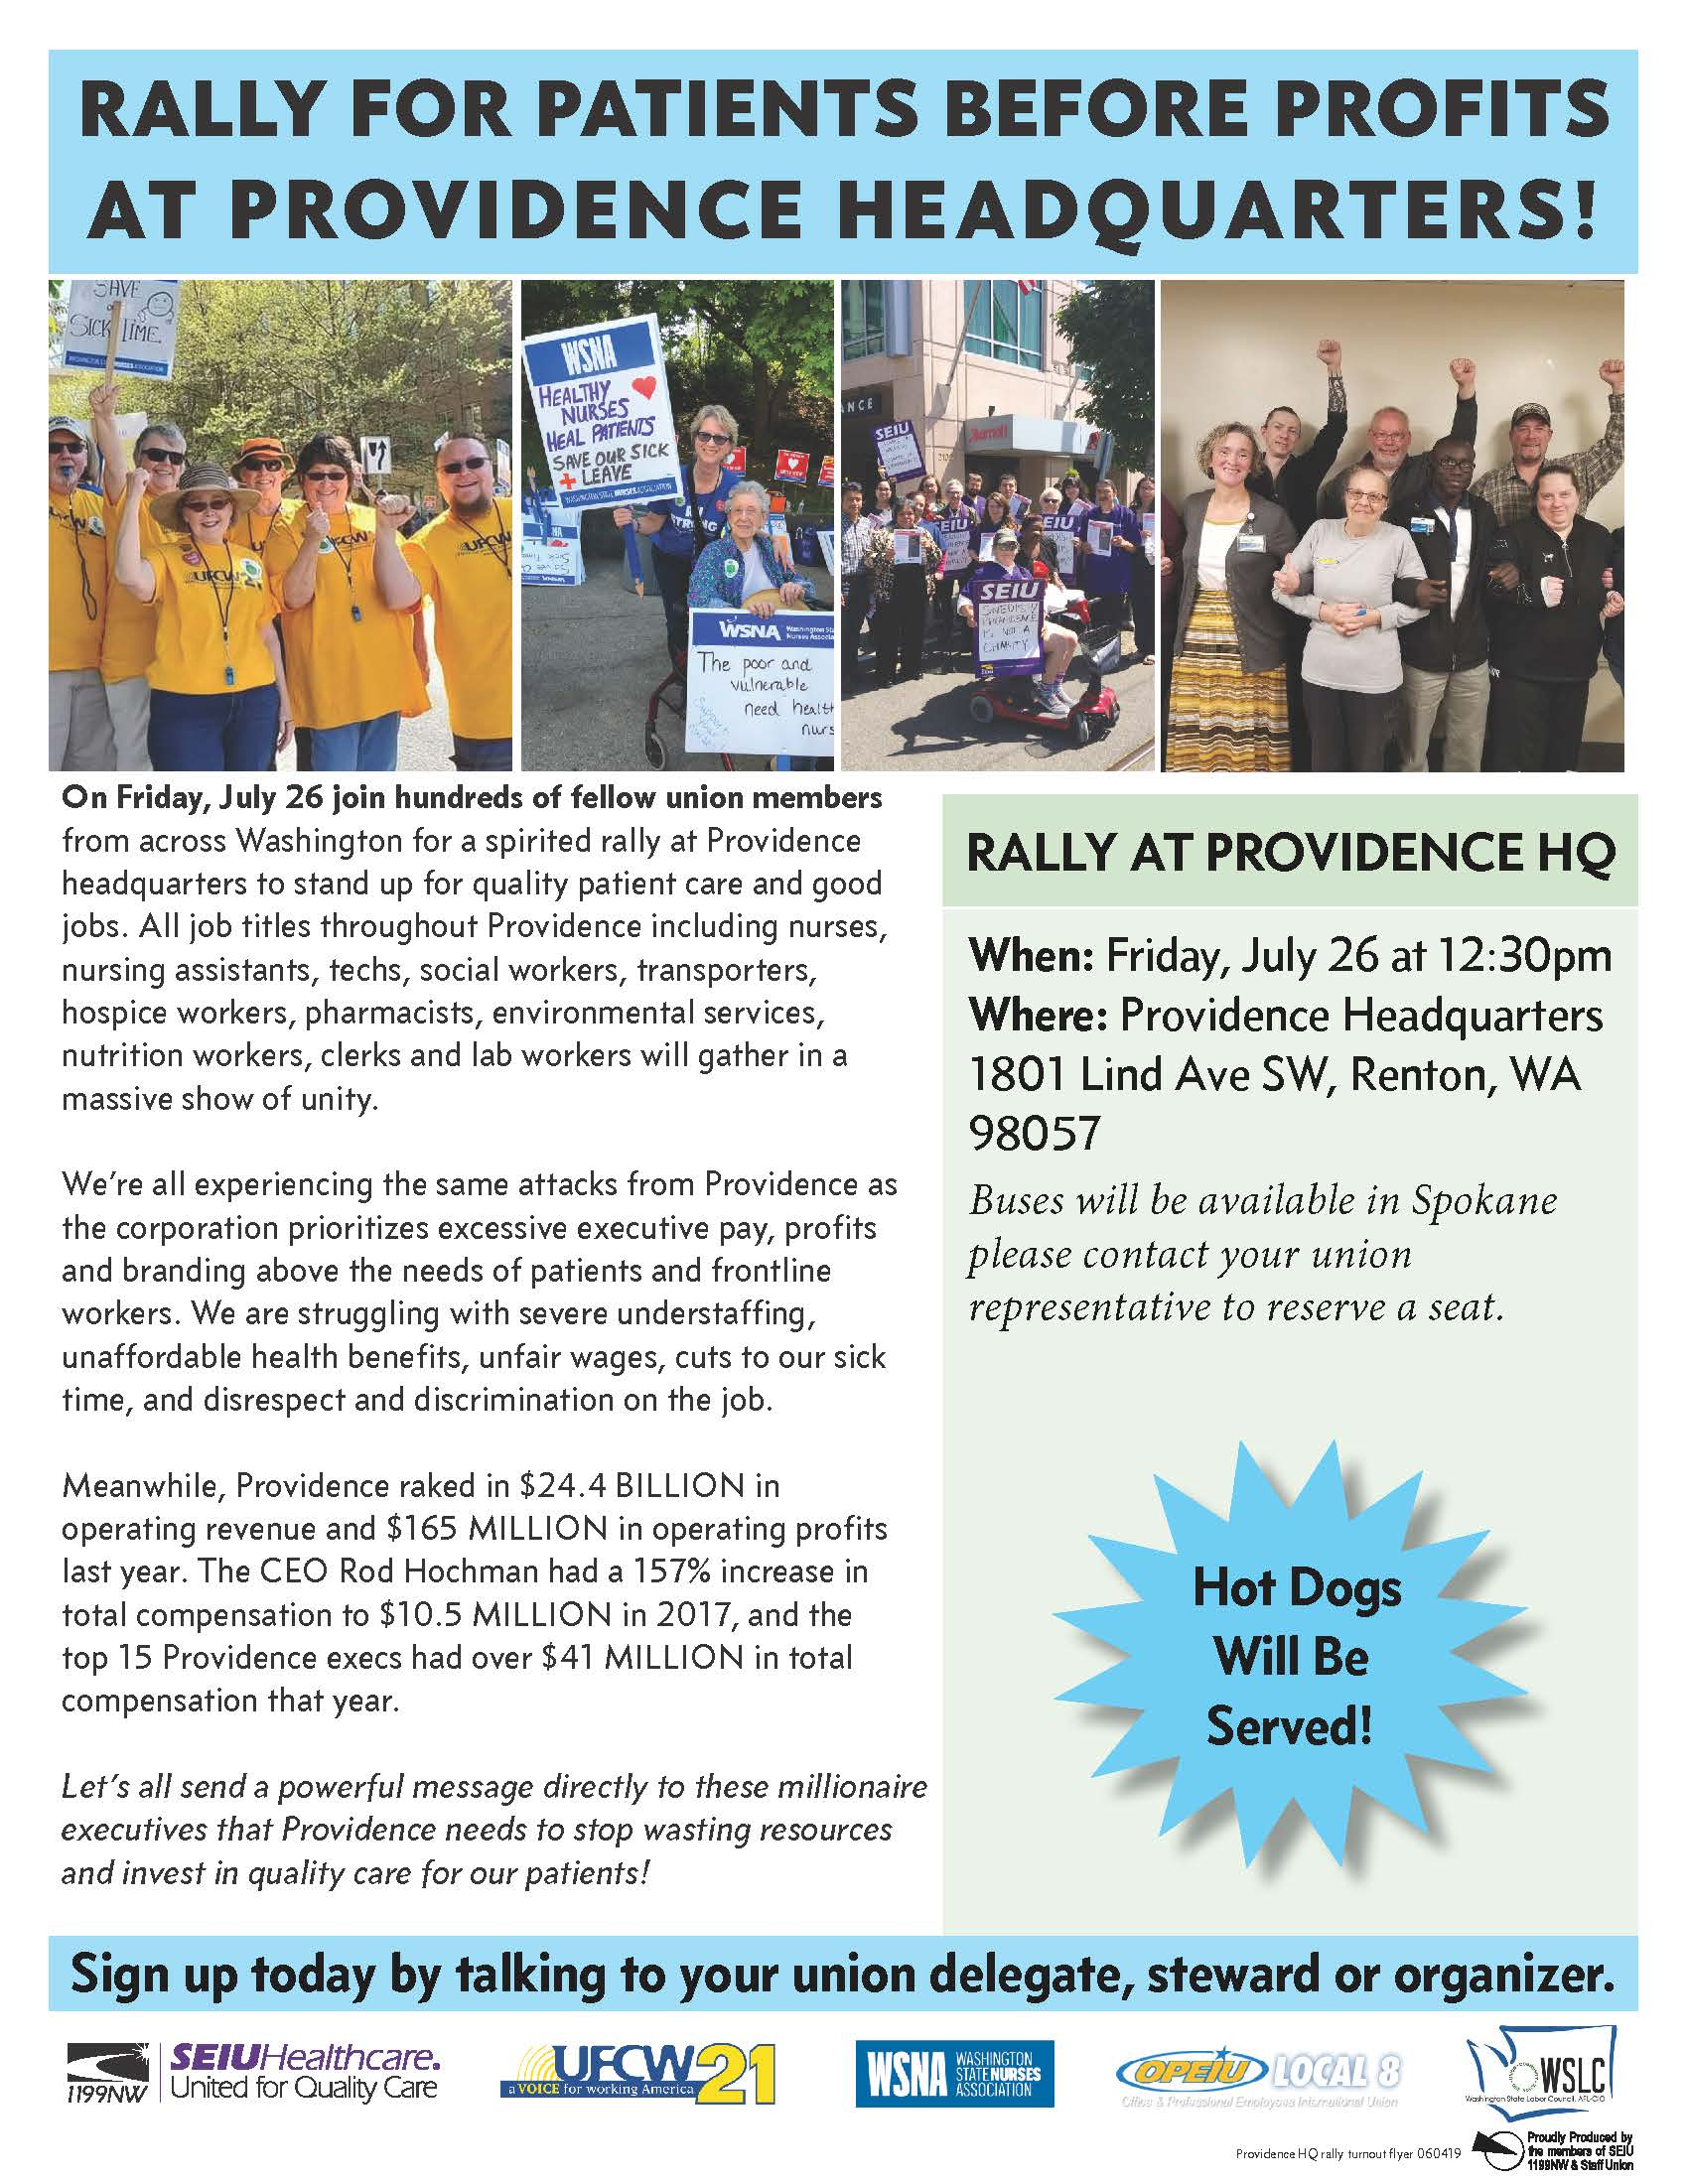 Providence HQ rally turnout flyer 060419 (6) (002).jpg